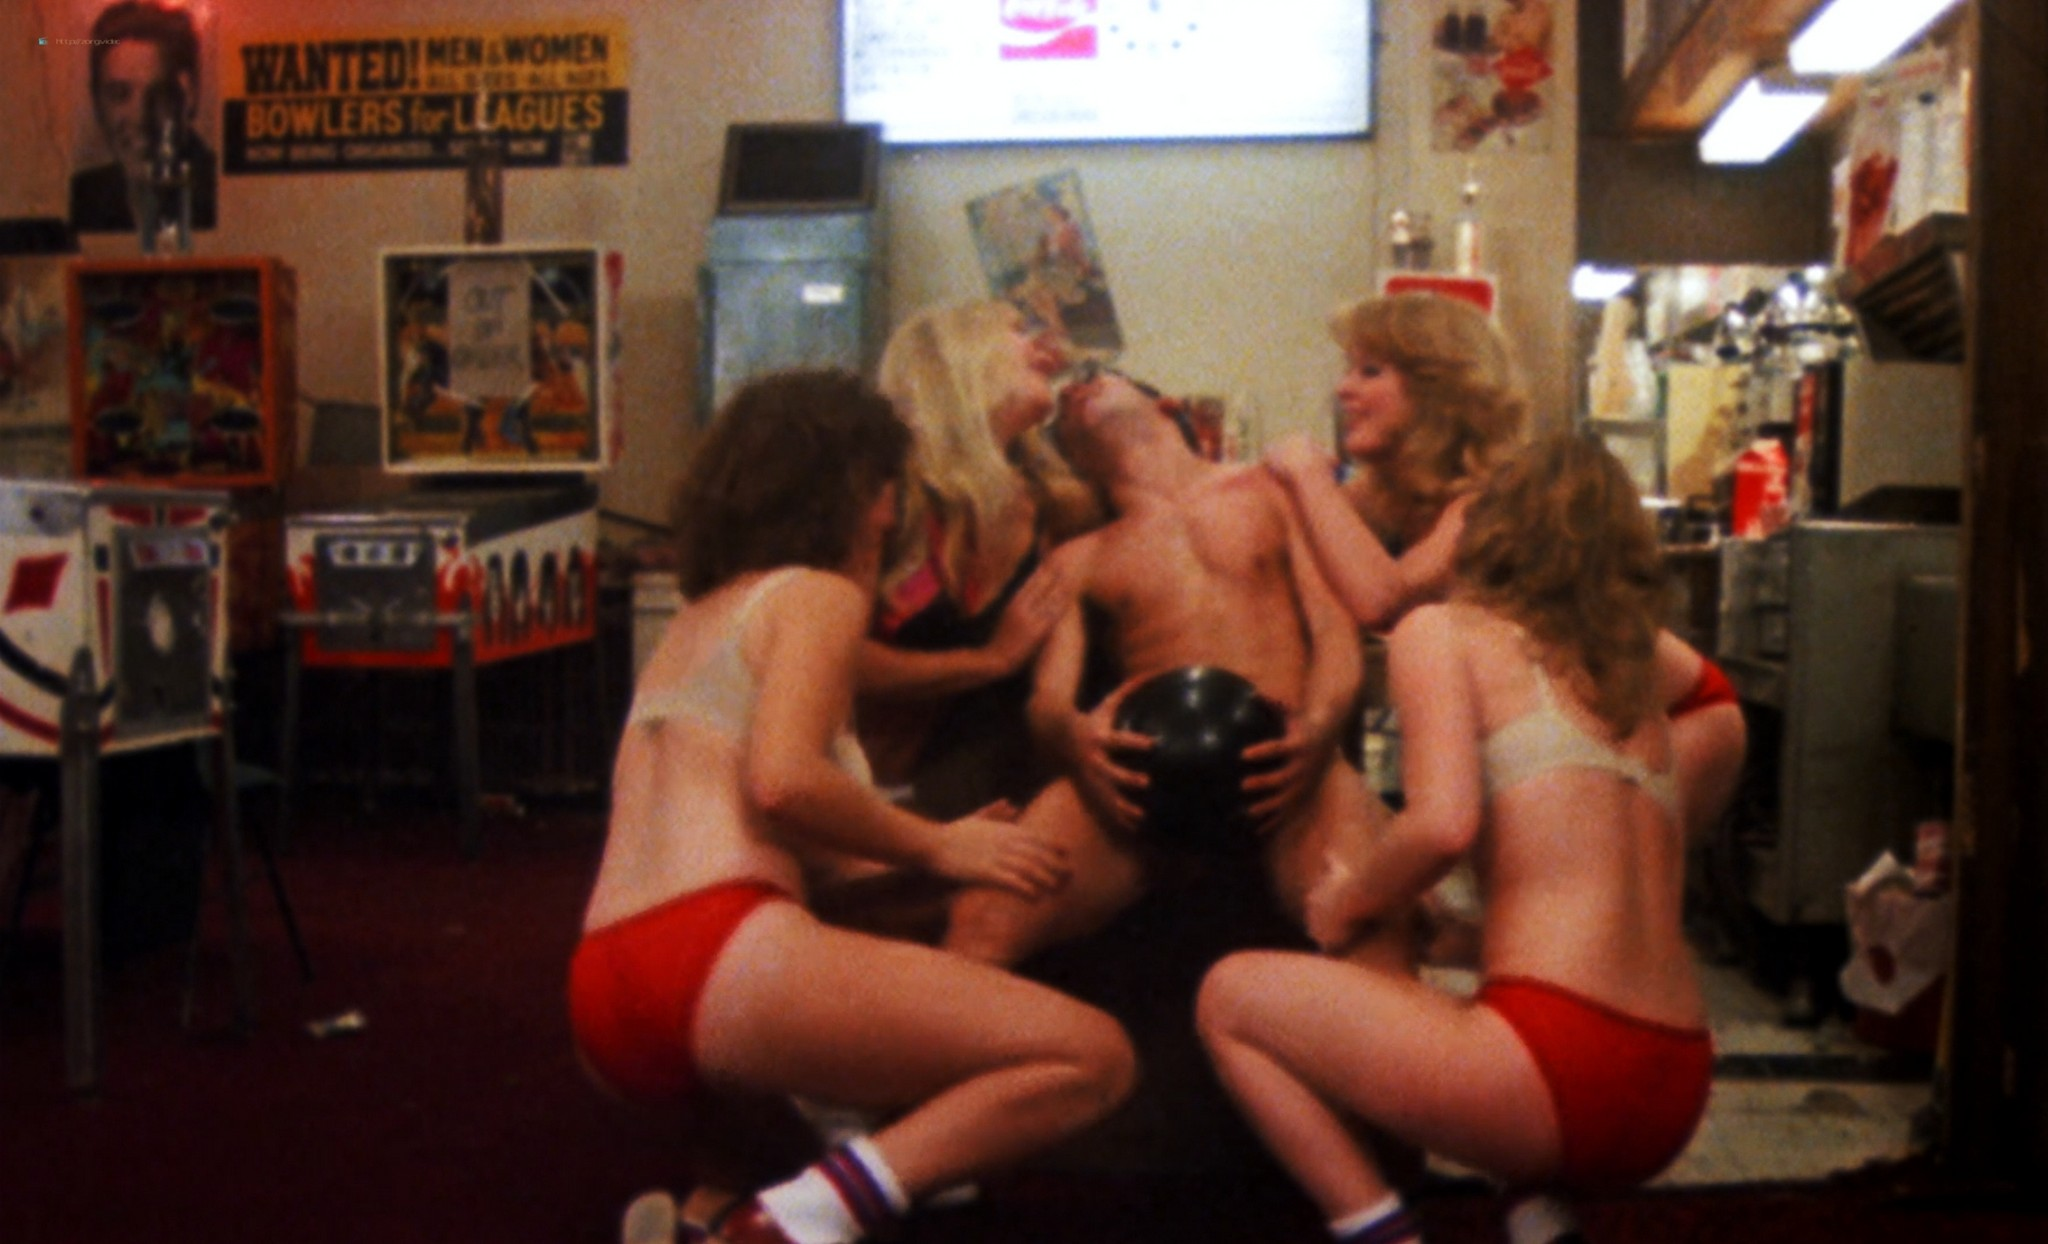 Linda Shayne nude Jennifer Inch, Astrid Brandt and other nude too - Screwballs (1983) HD 1080p BluRay (5)